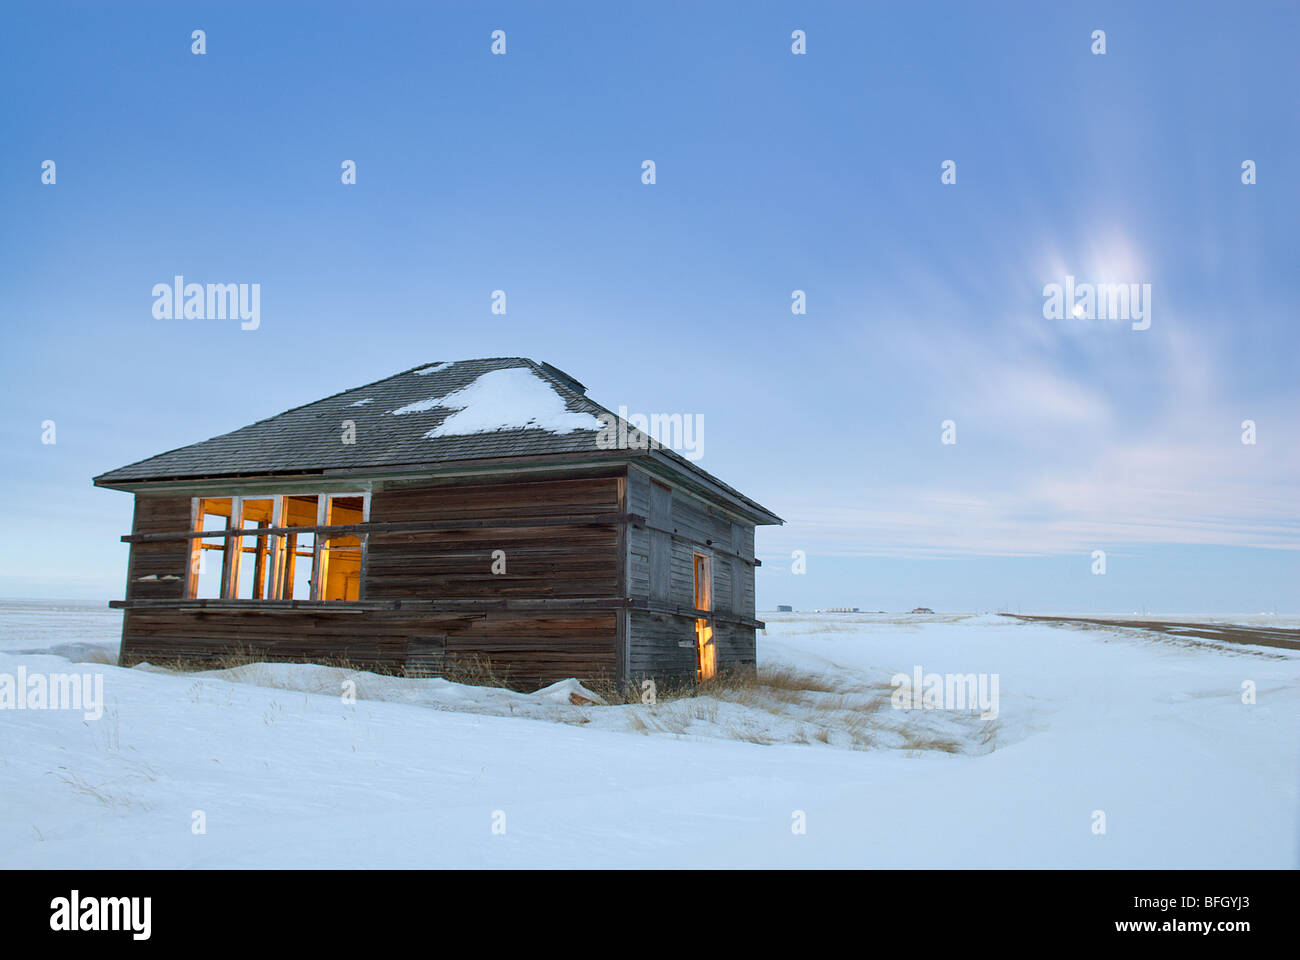 Abandoned house near Foremost, Alberta, Canada - Stock Image